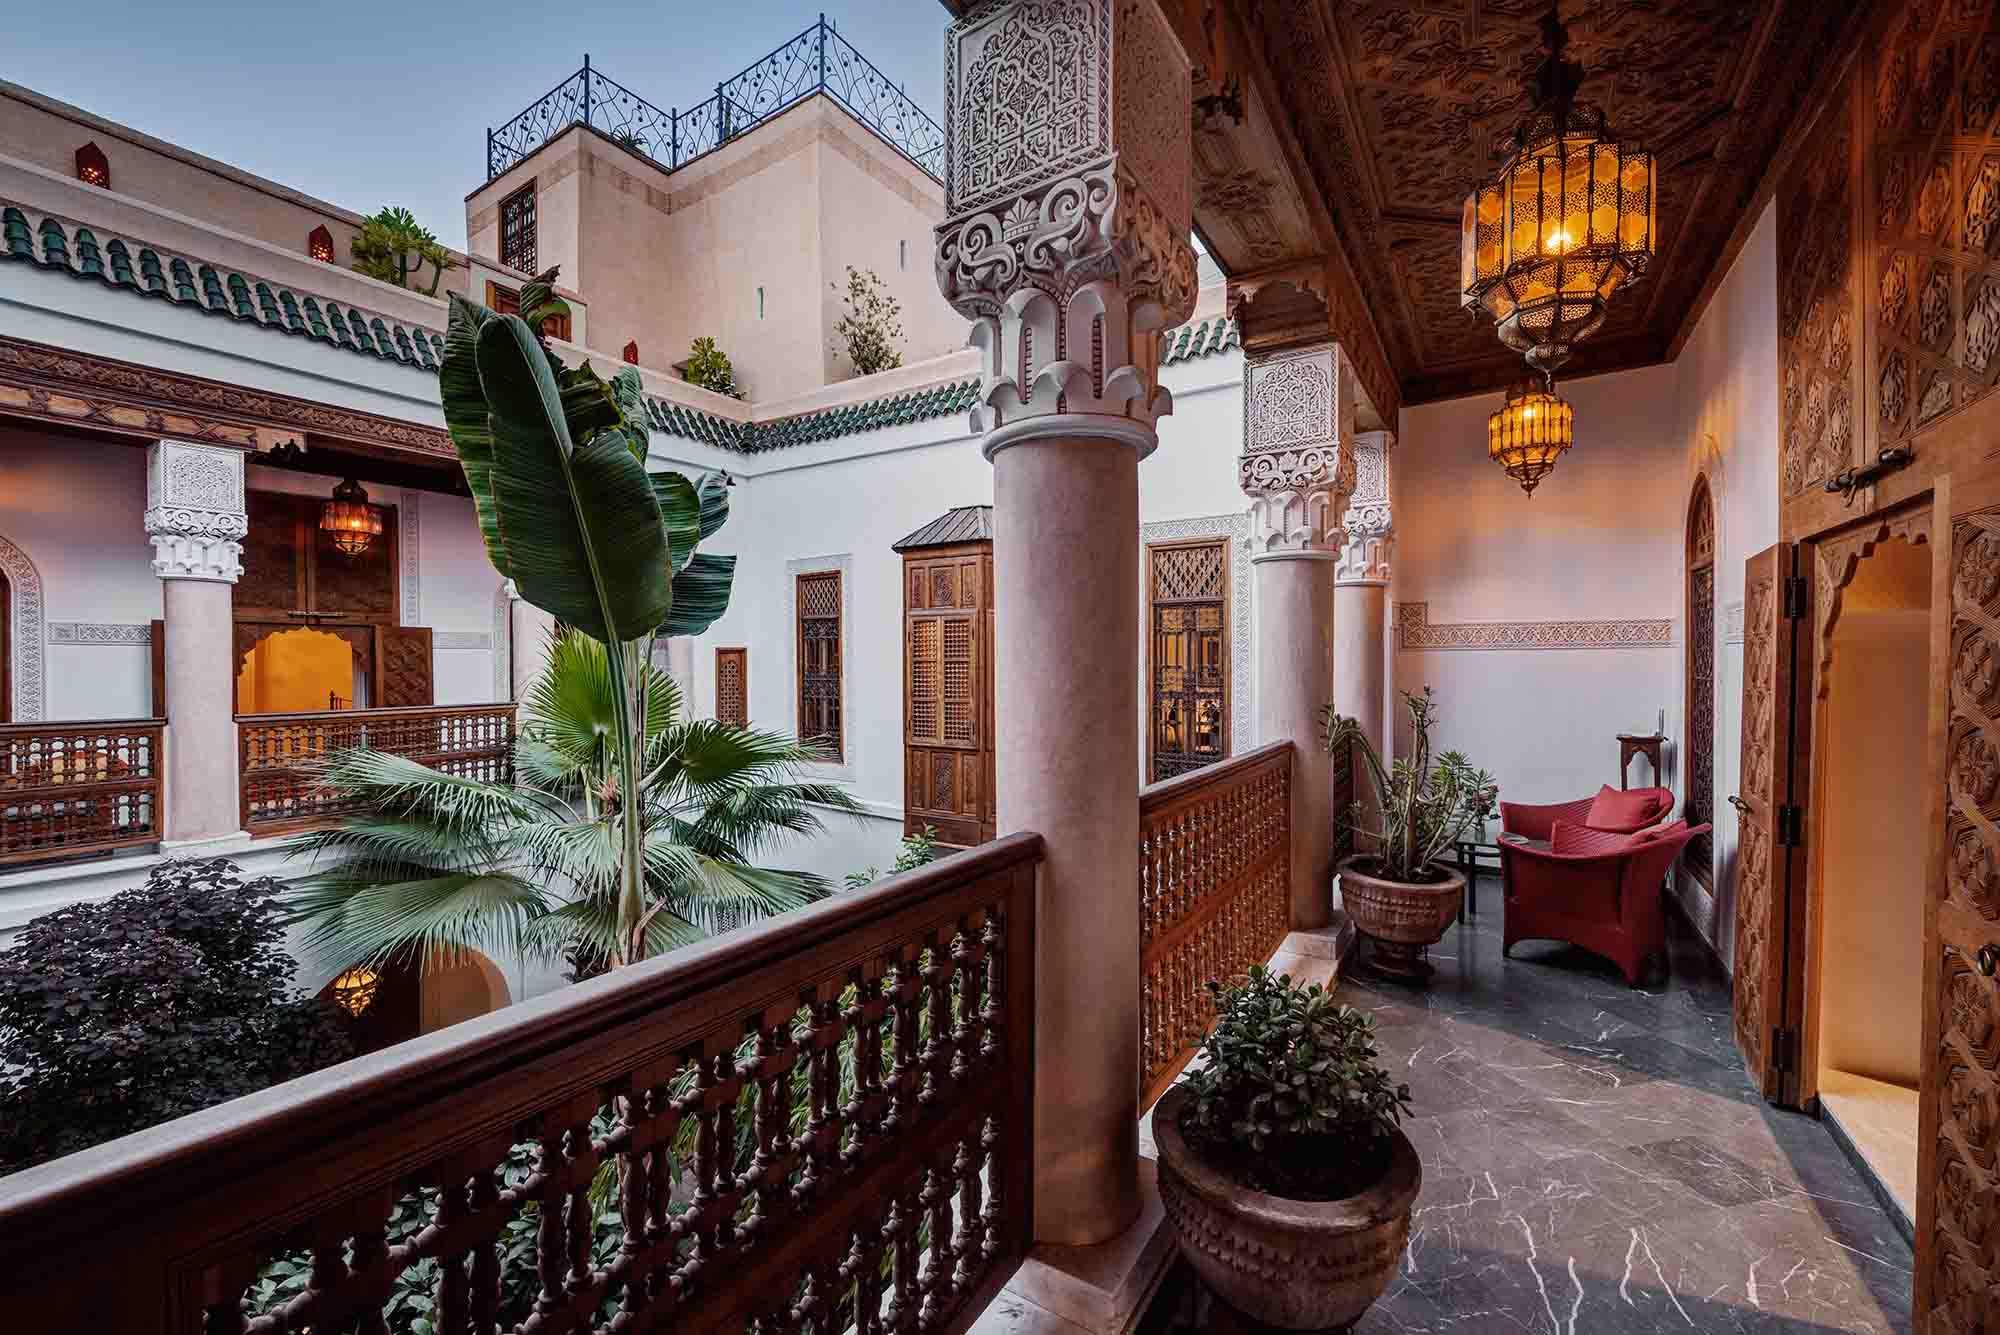 RIAD SIWAN GUEST HOUSE MARRAKECH TERRACE